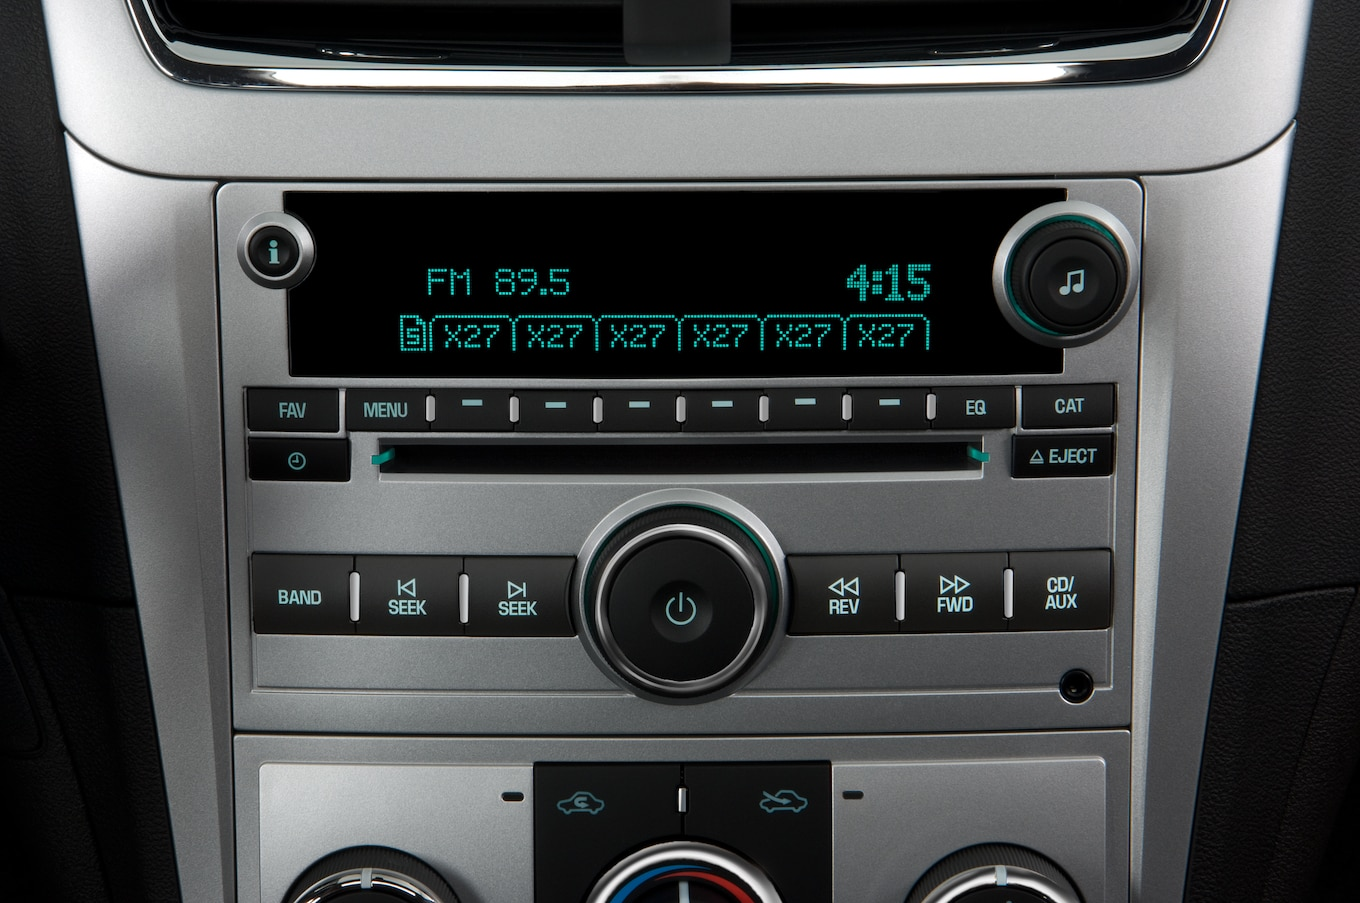 chevy radio 57 2002 isuzu npr wiring diagram 2011 chevrolet malibu reviews and rating motor trend